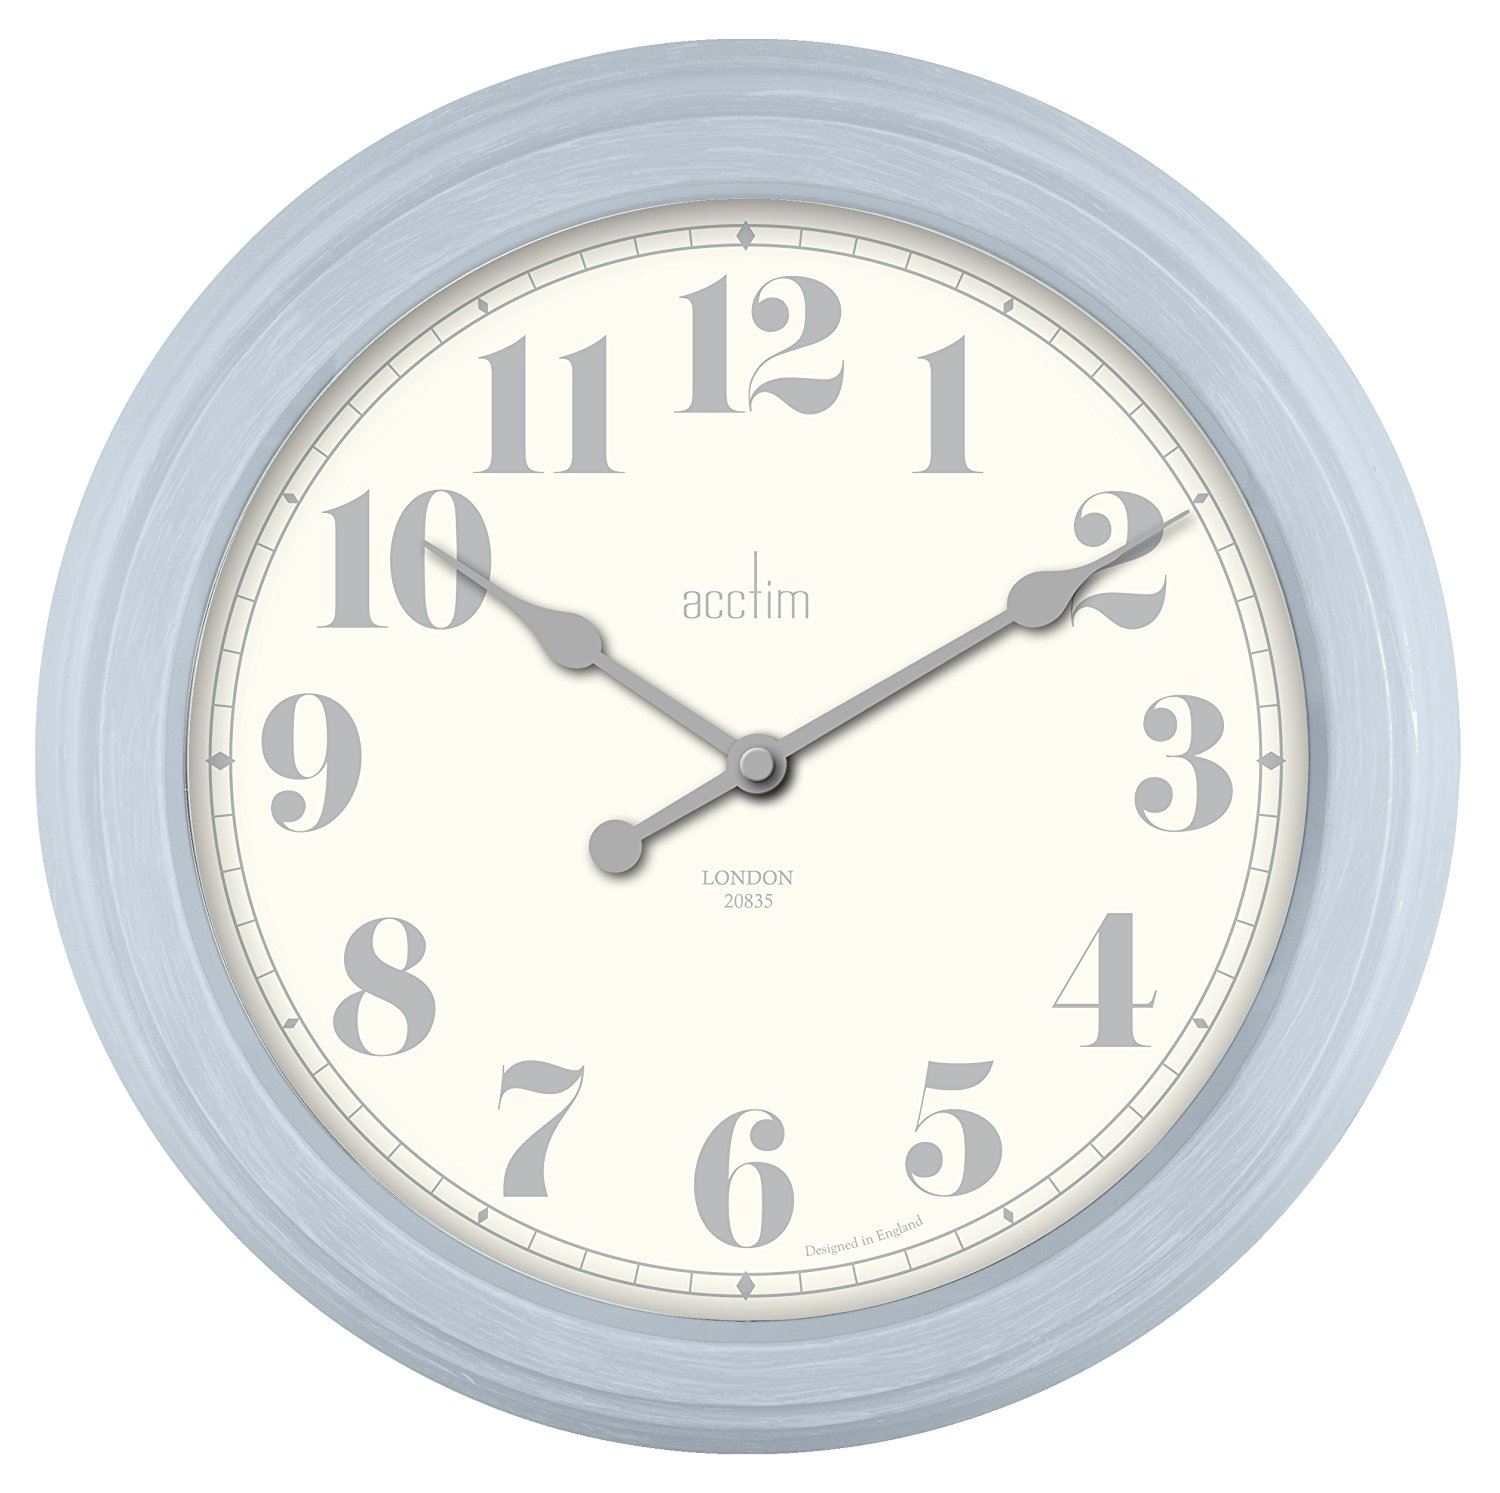 Chester Design Vintage Style Wall Clock In Clear Day Blue Case 35cm